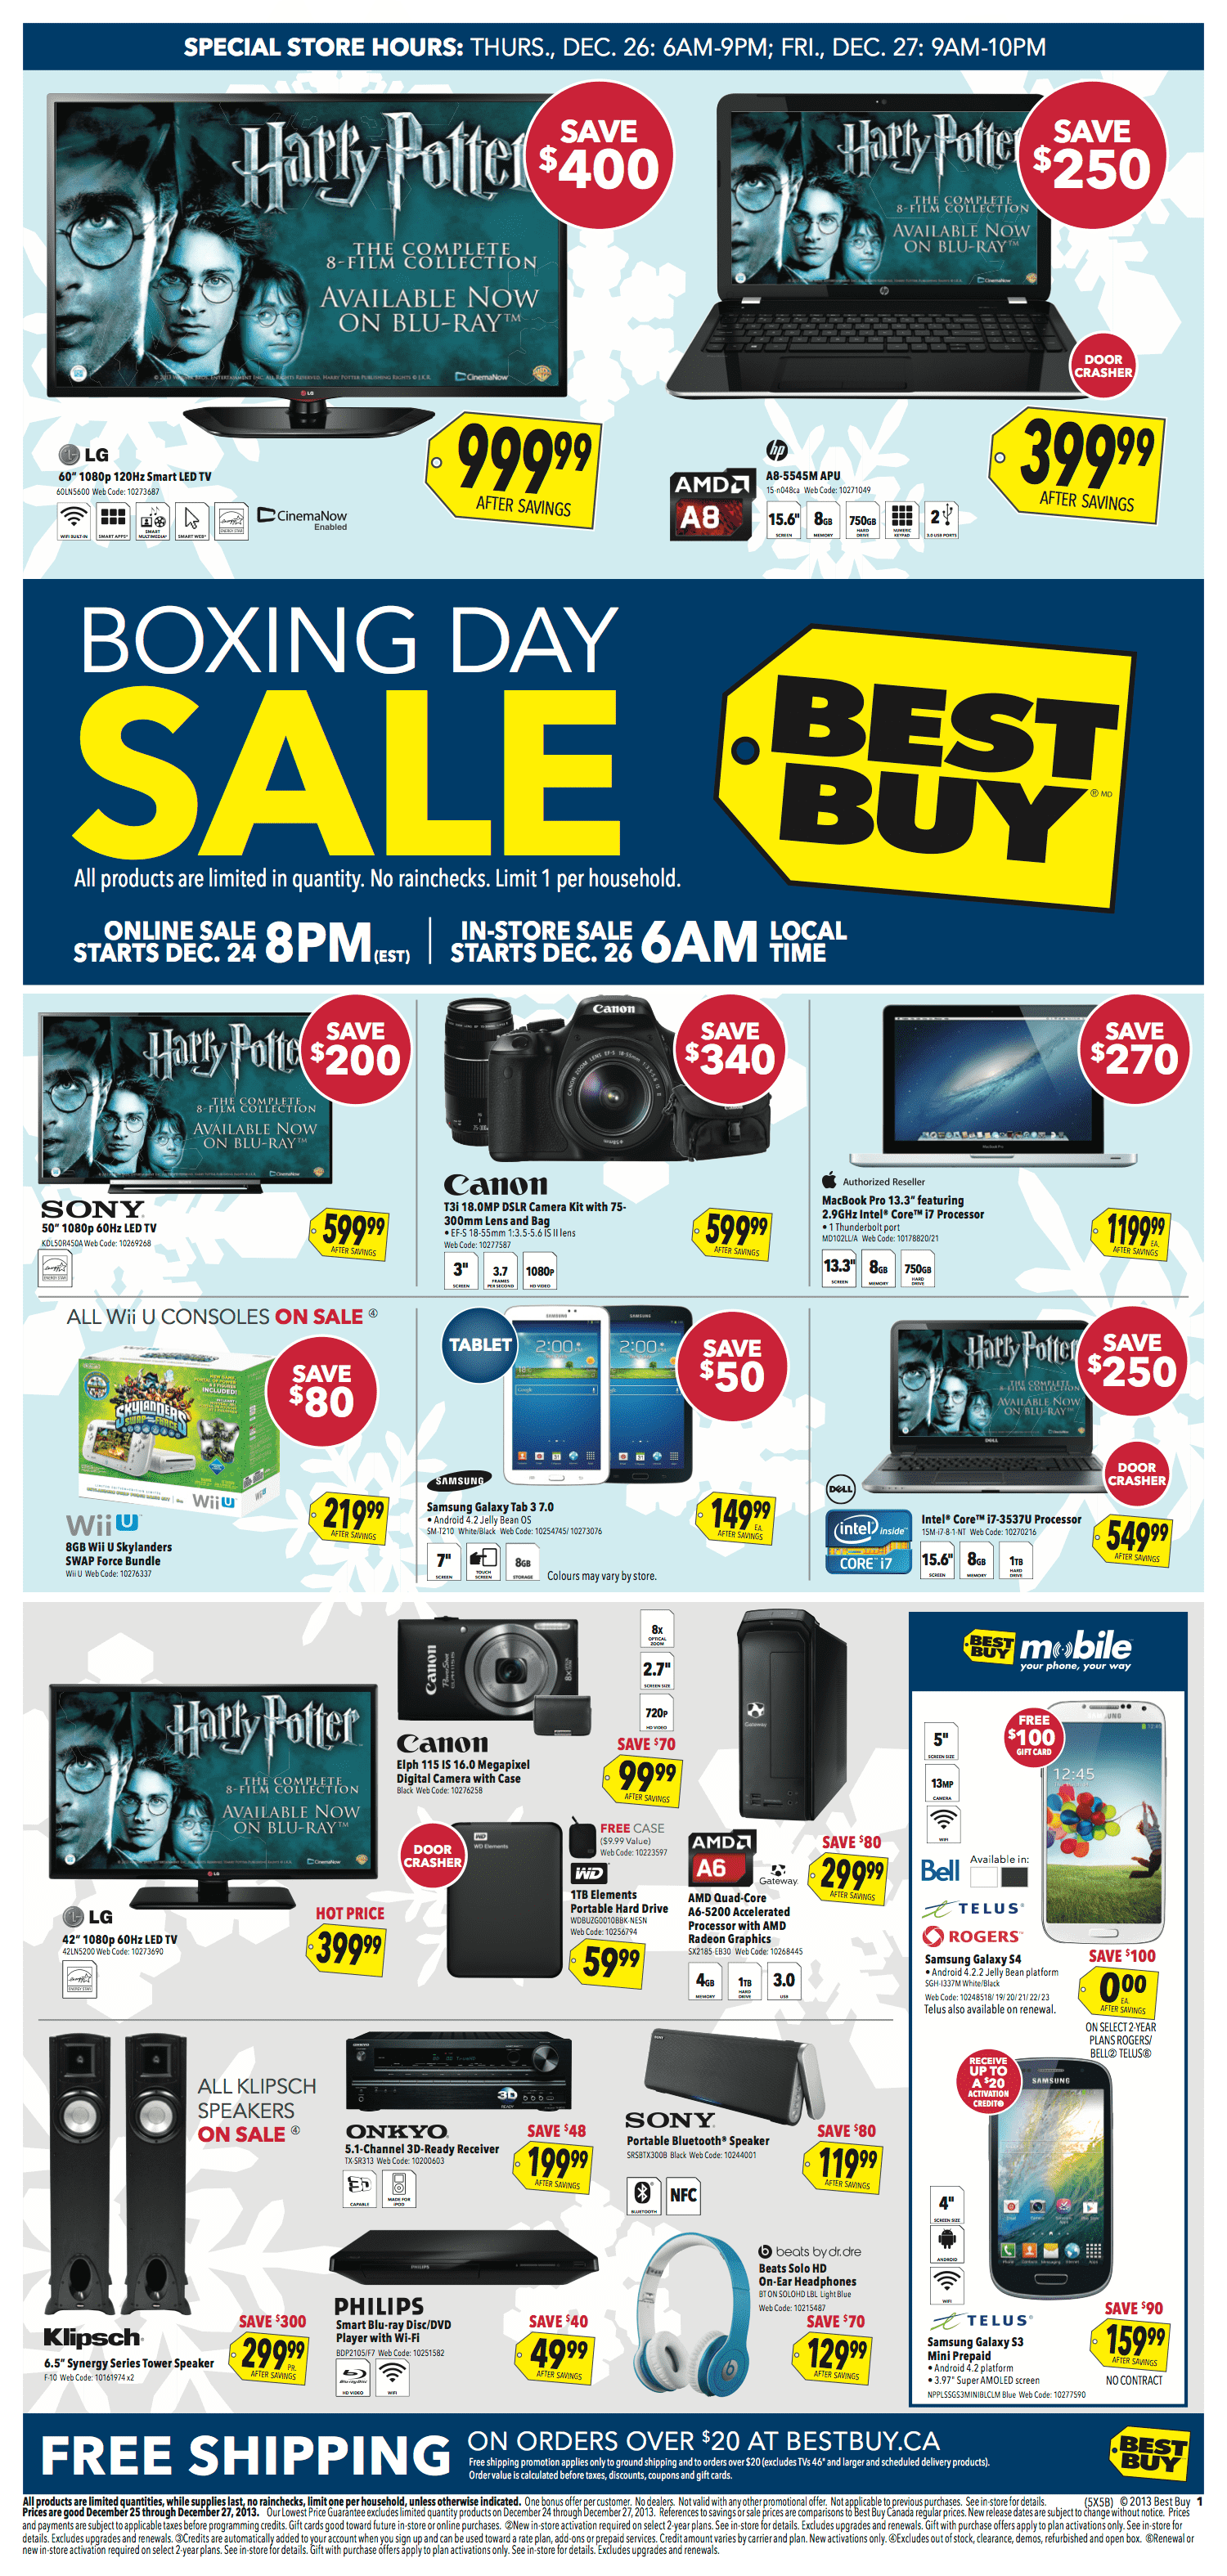 Here is a roundup of all the Boxing Day and Boxing Week flyers, deals and discounts available at Best Buy. Home to the widest range of electronics and electronic accessories to fit your every need, you can find great online and in-store deals.